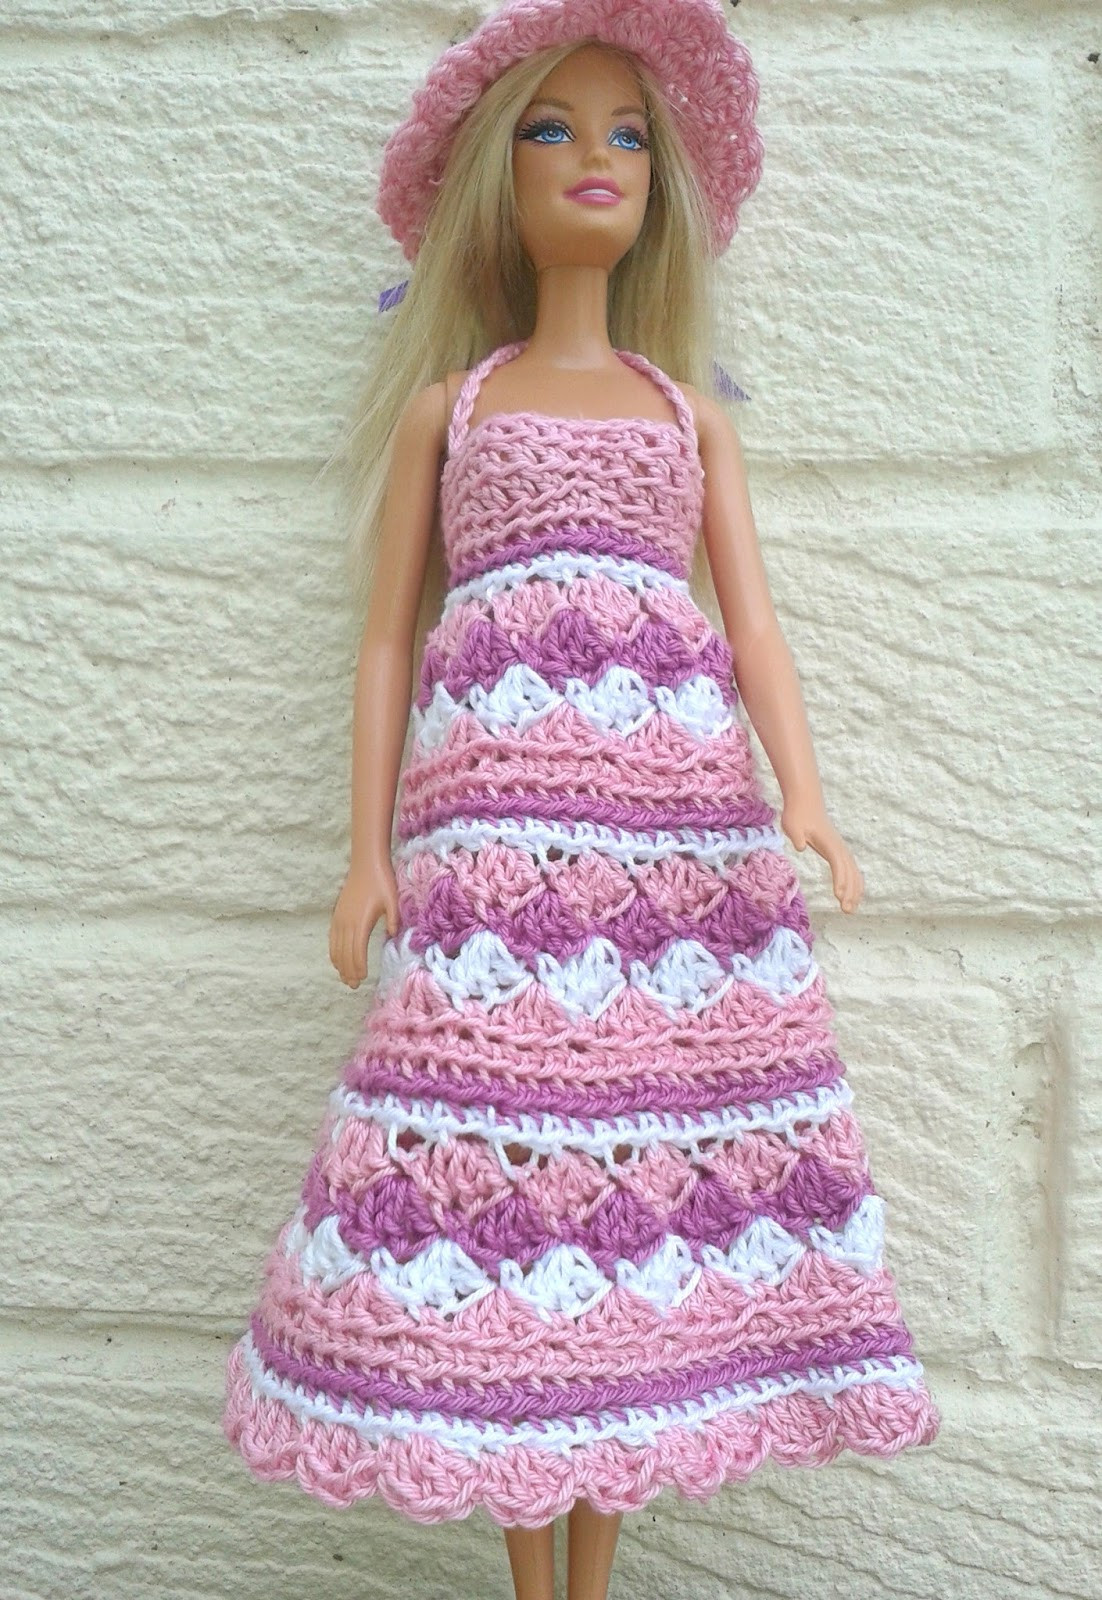 Free Barbie Crochet Patterns Awesome Linmary Knits Barbie Crochet Summer Dress and Hat Of Awesome 43 Pics Free Barbie Crochet Patterns